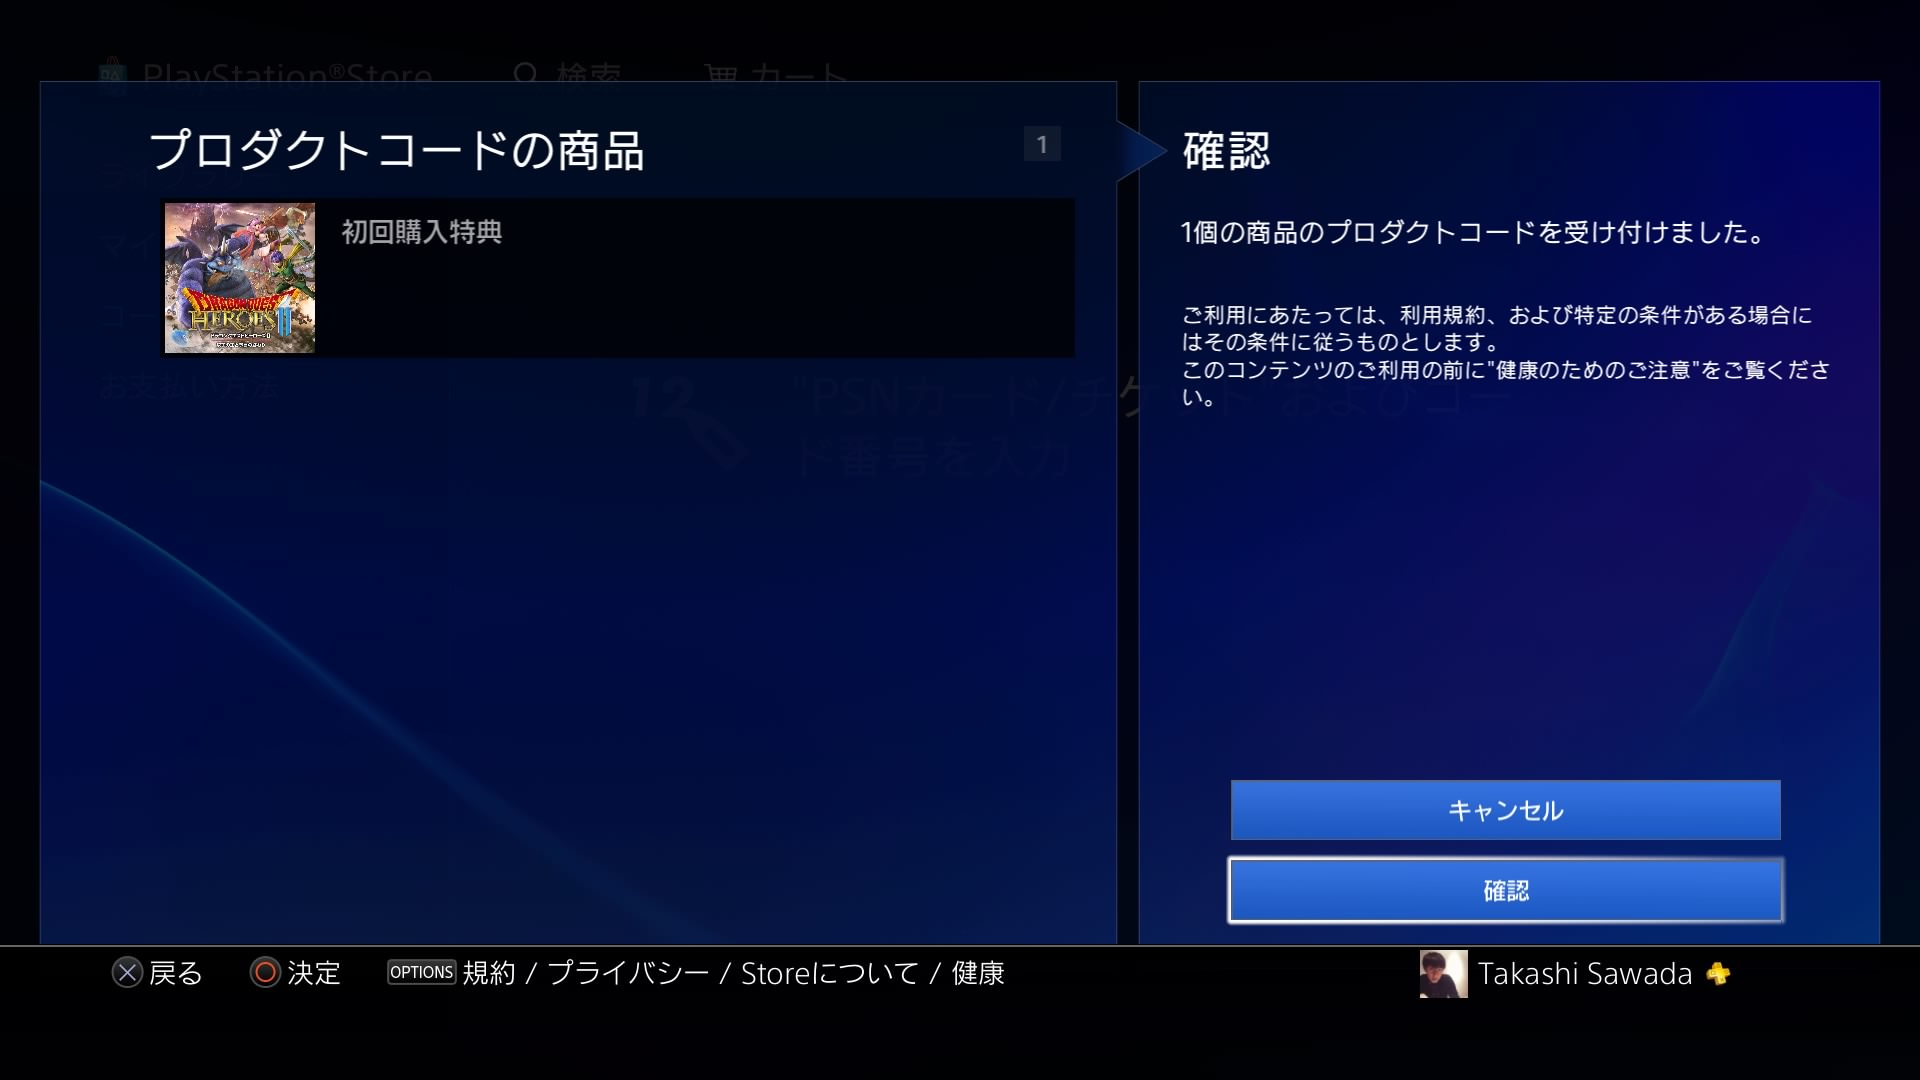 How to download product code contents for playstation 4 5